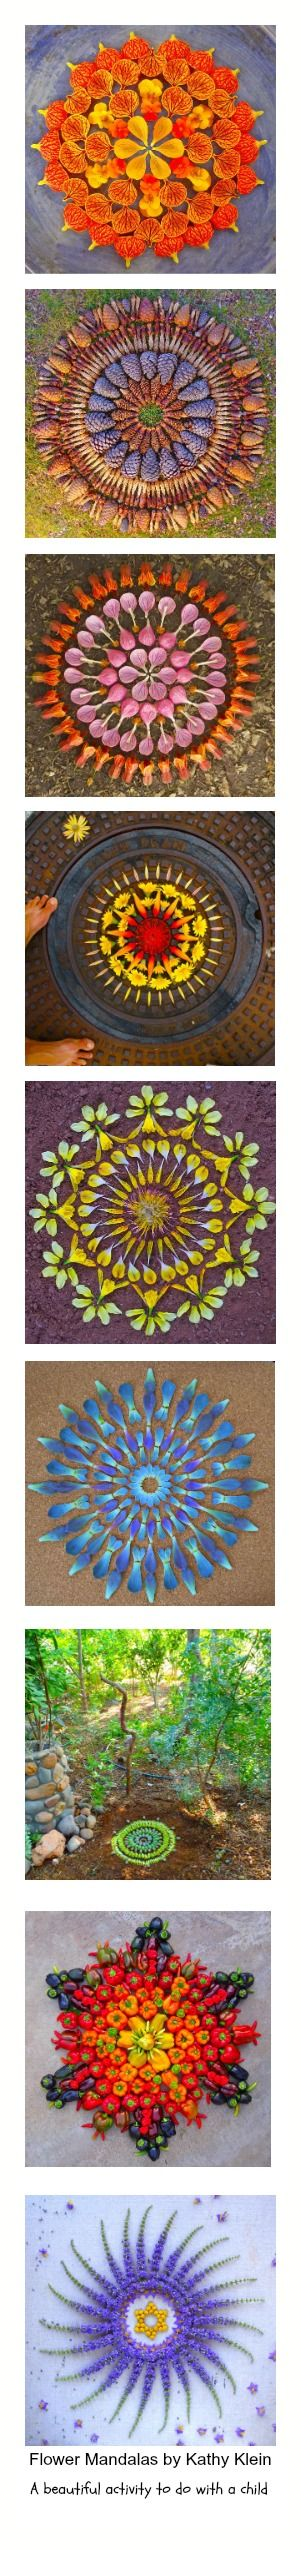 Flower Mandalas by Kathy Klein  Inspiration to create beautiful designs with natures beauty.